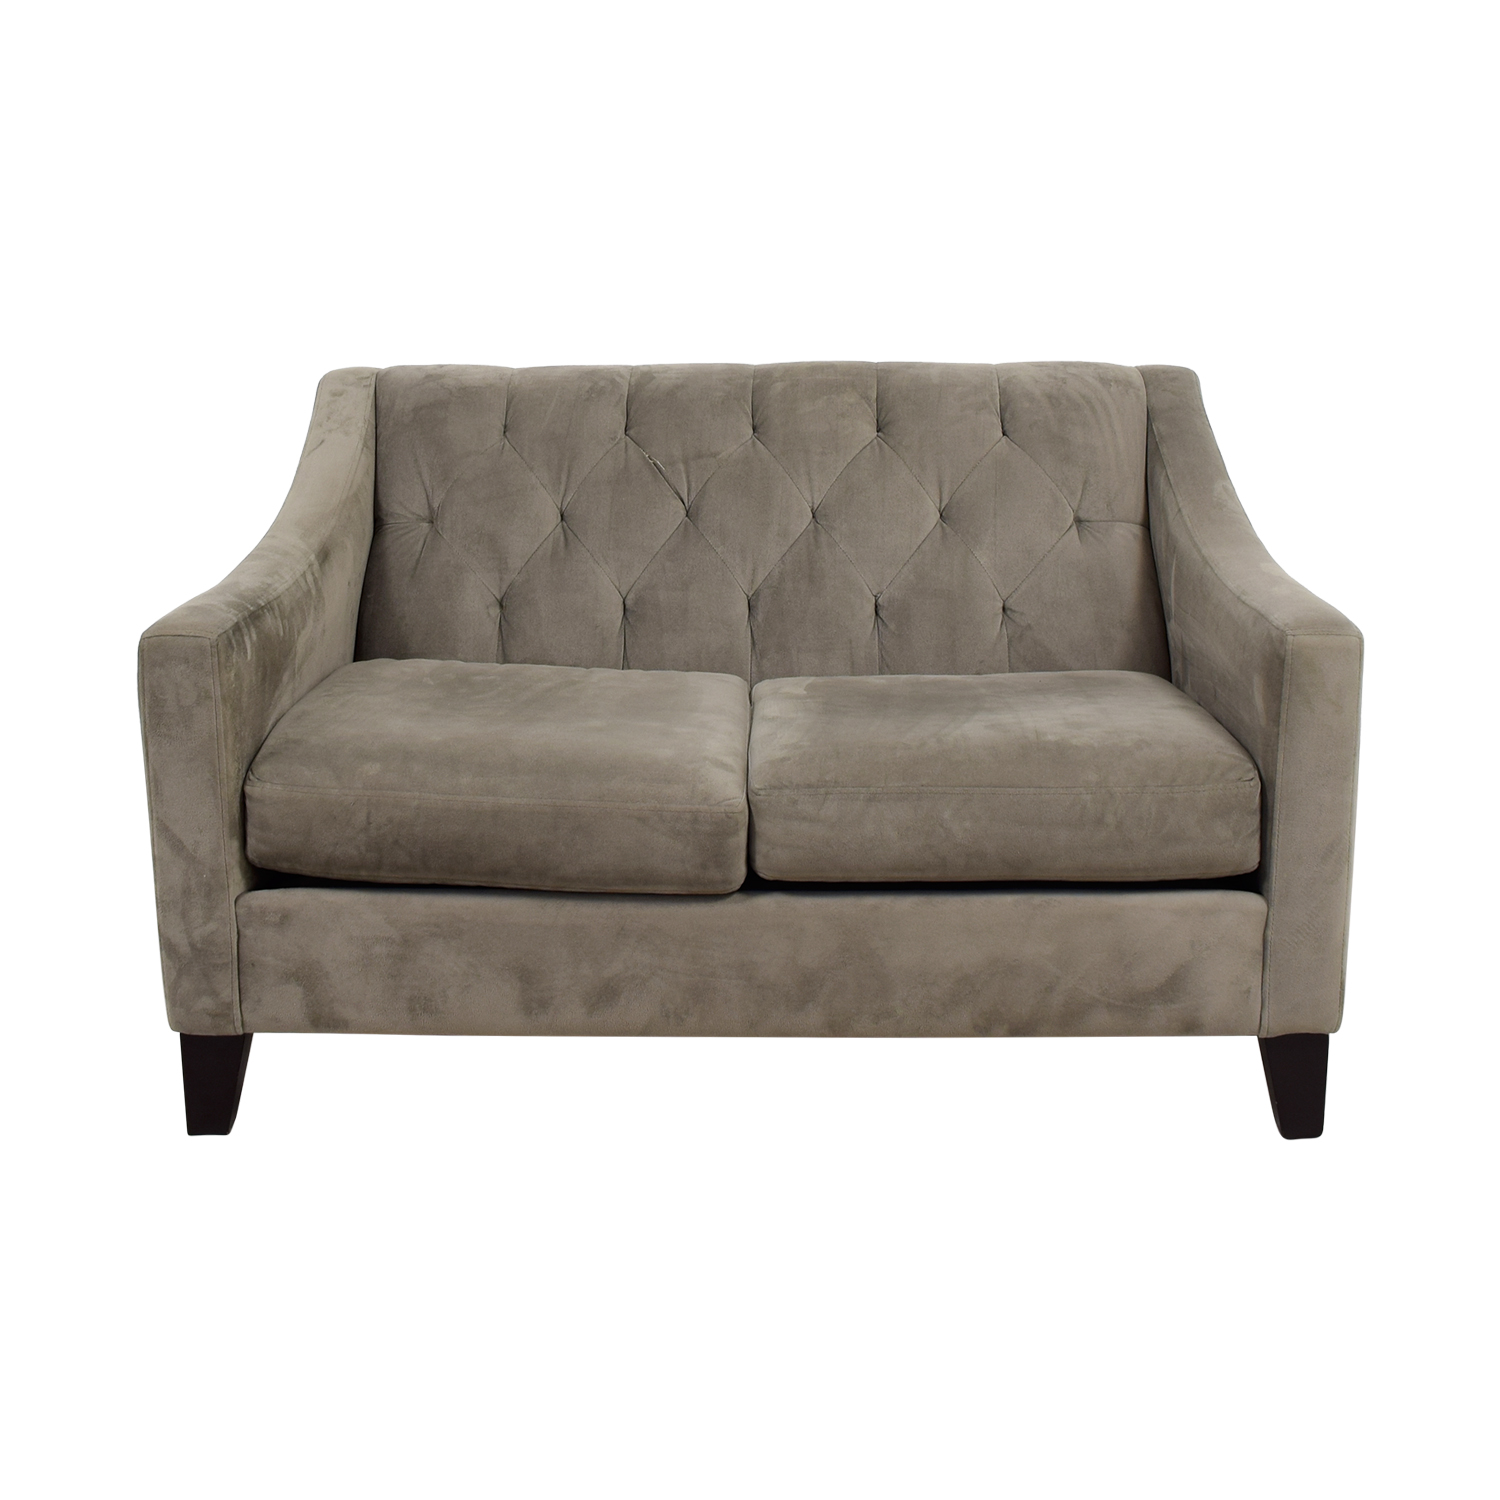 Better By Design Tufted Velvet Loveseat Coupon